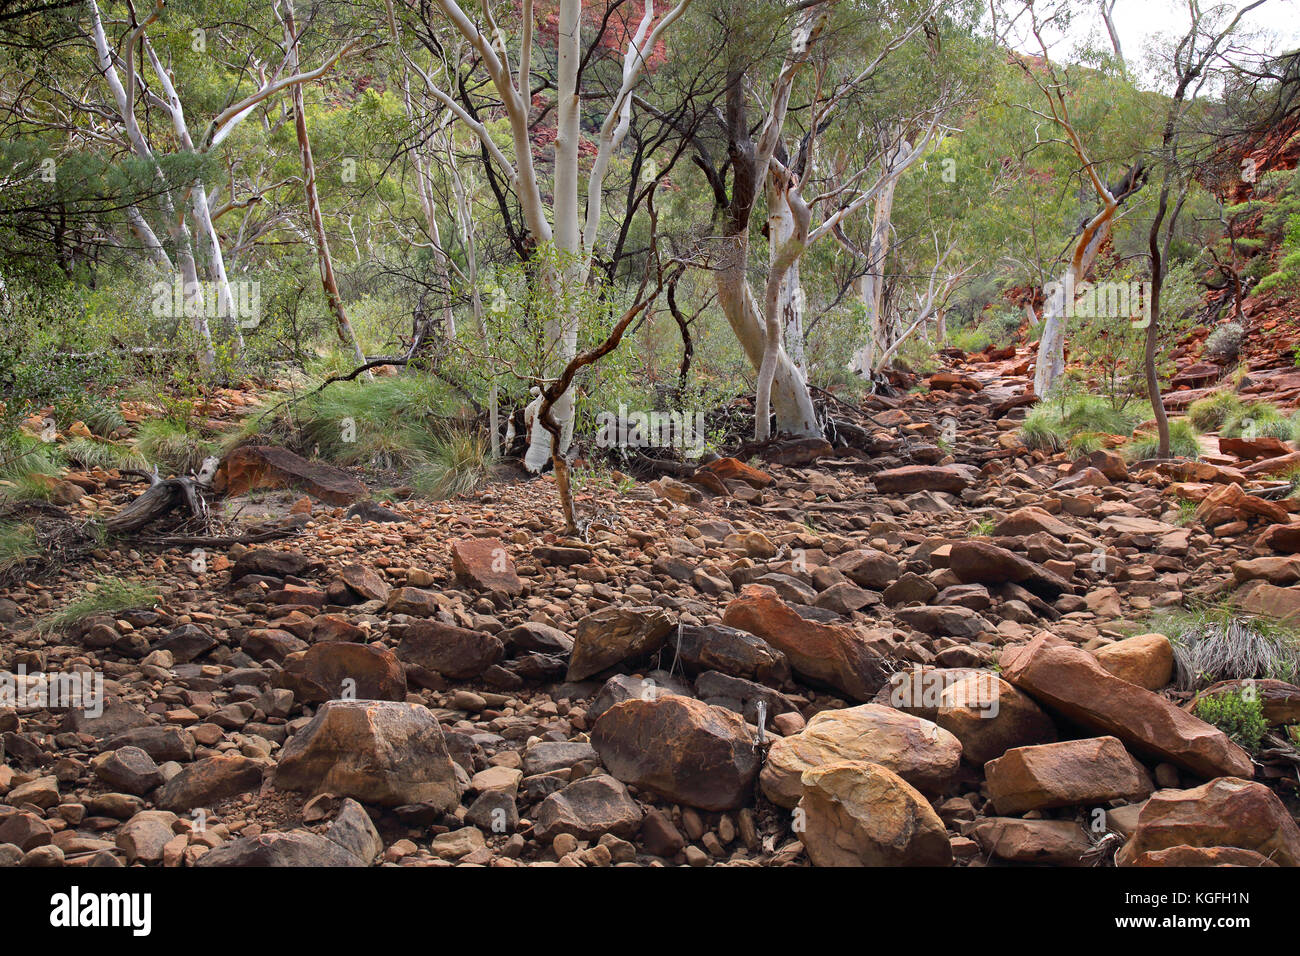 kings canyon creek and dried up   riverbed  in the northern territory outback  australia Stock Photo